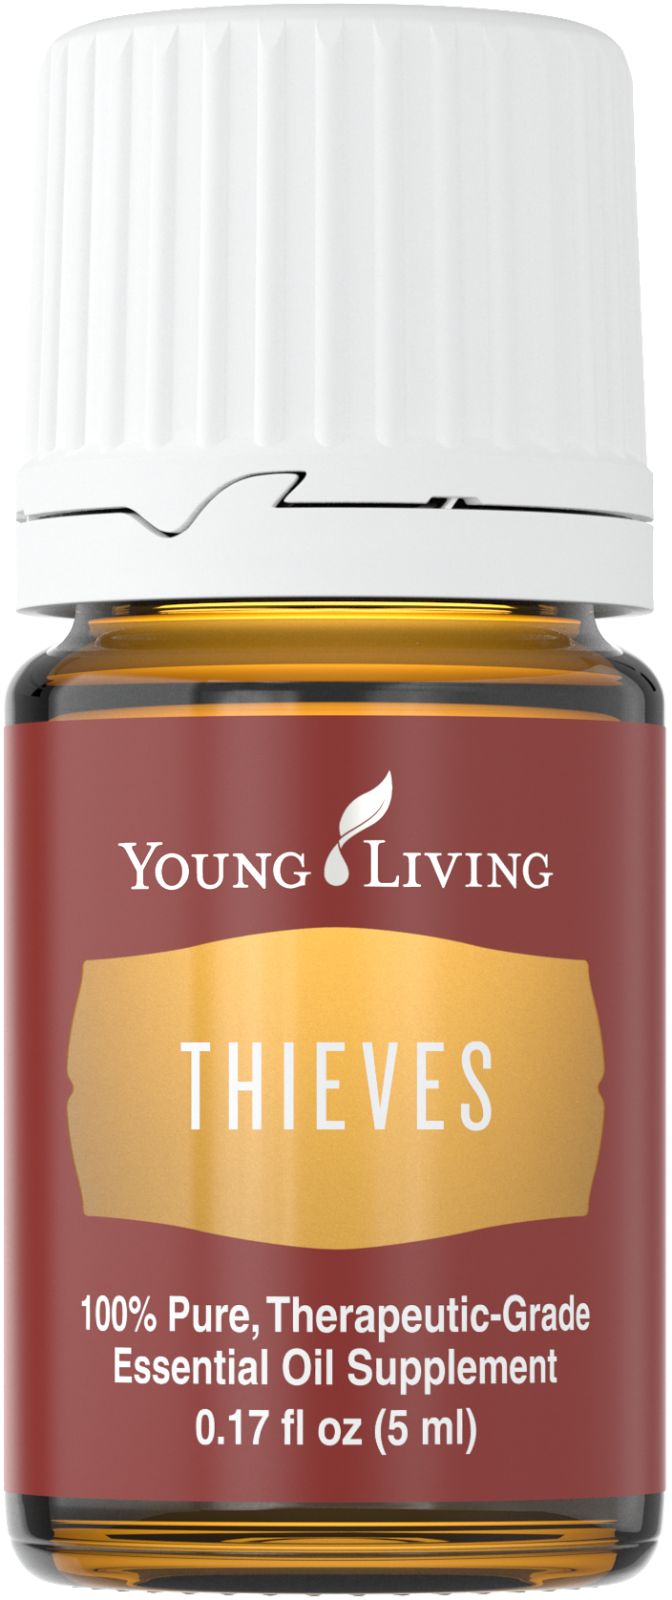 How to use #Thieves essential oil #compliant #YLEO | Young ...